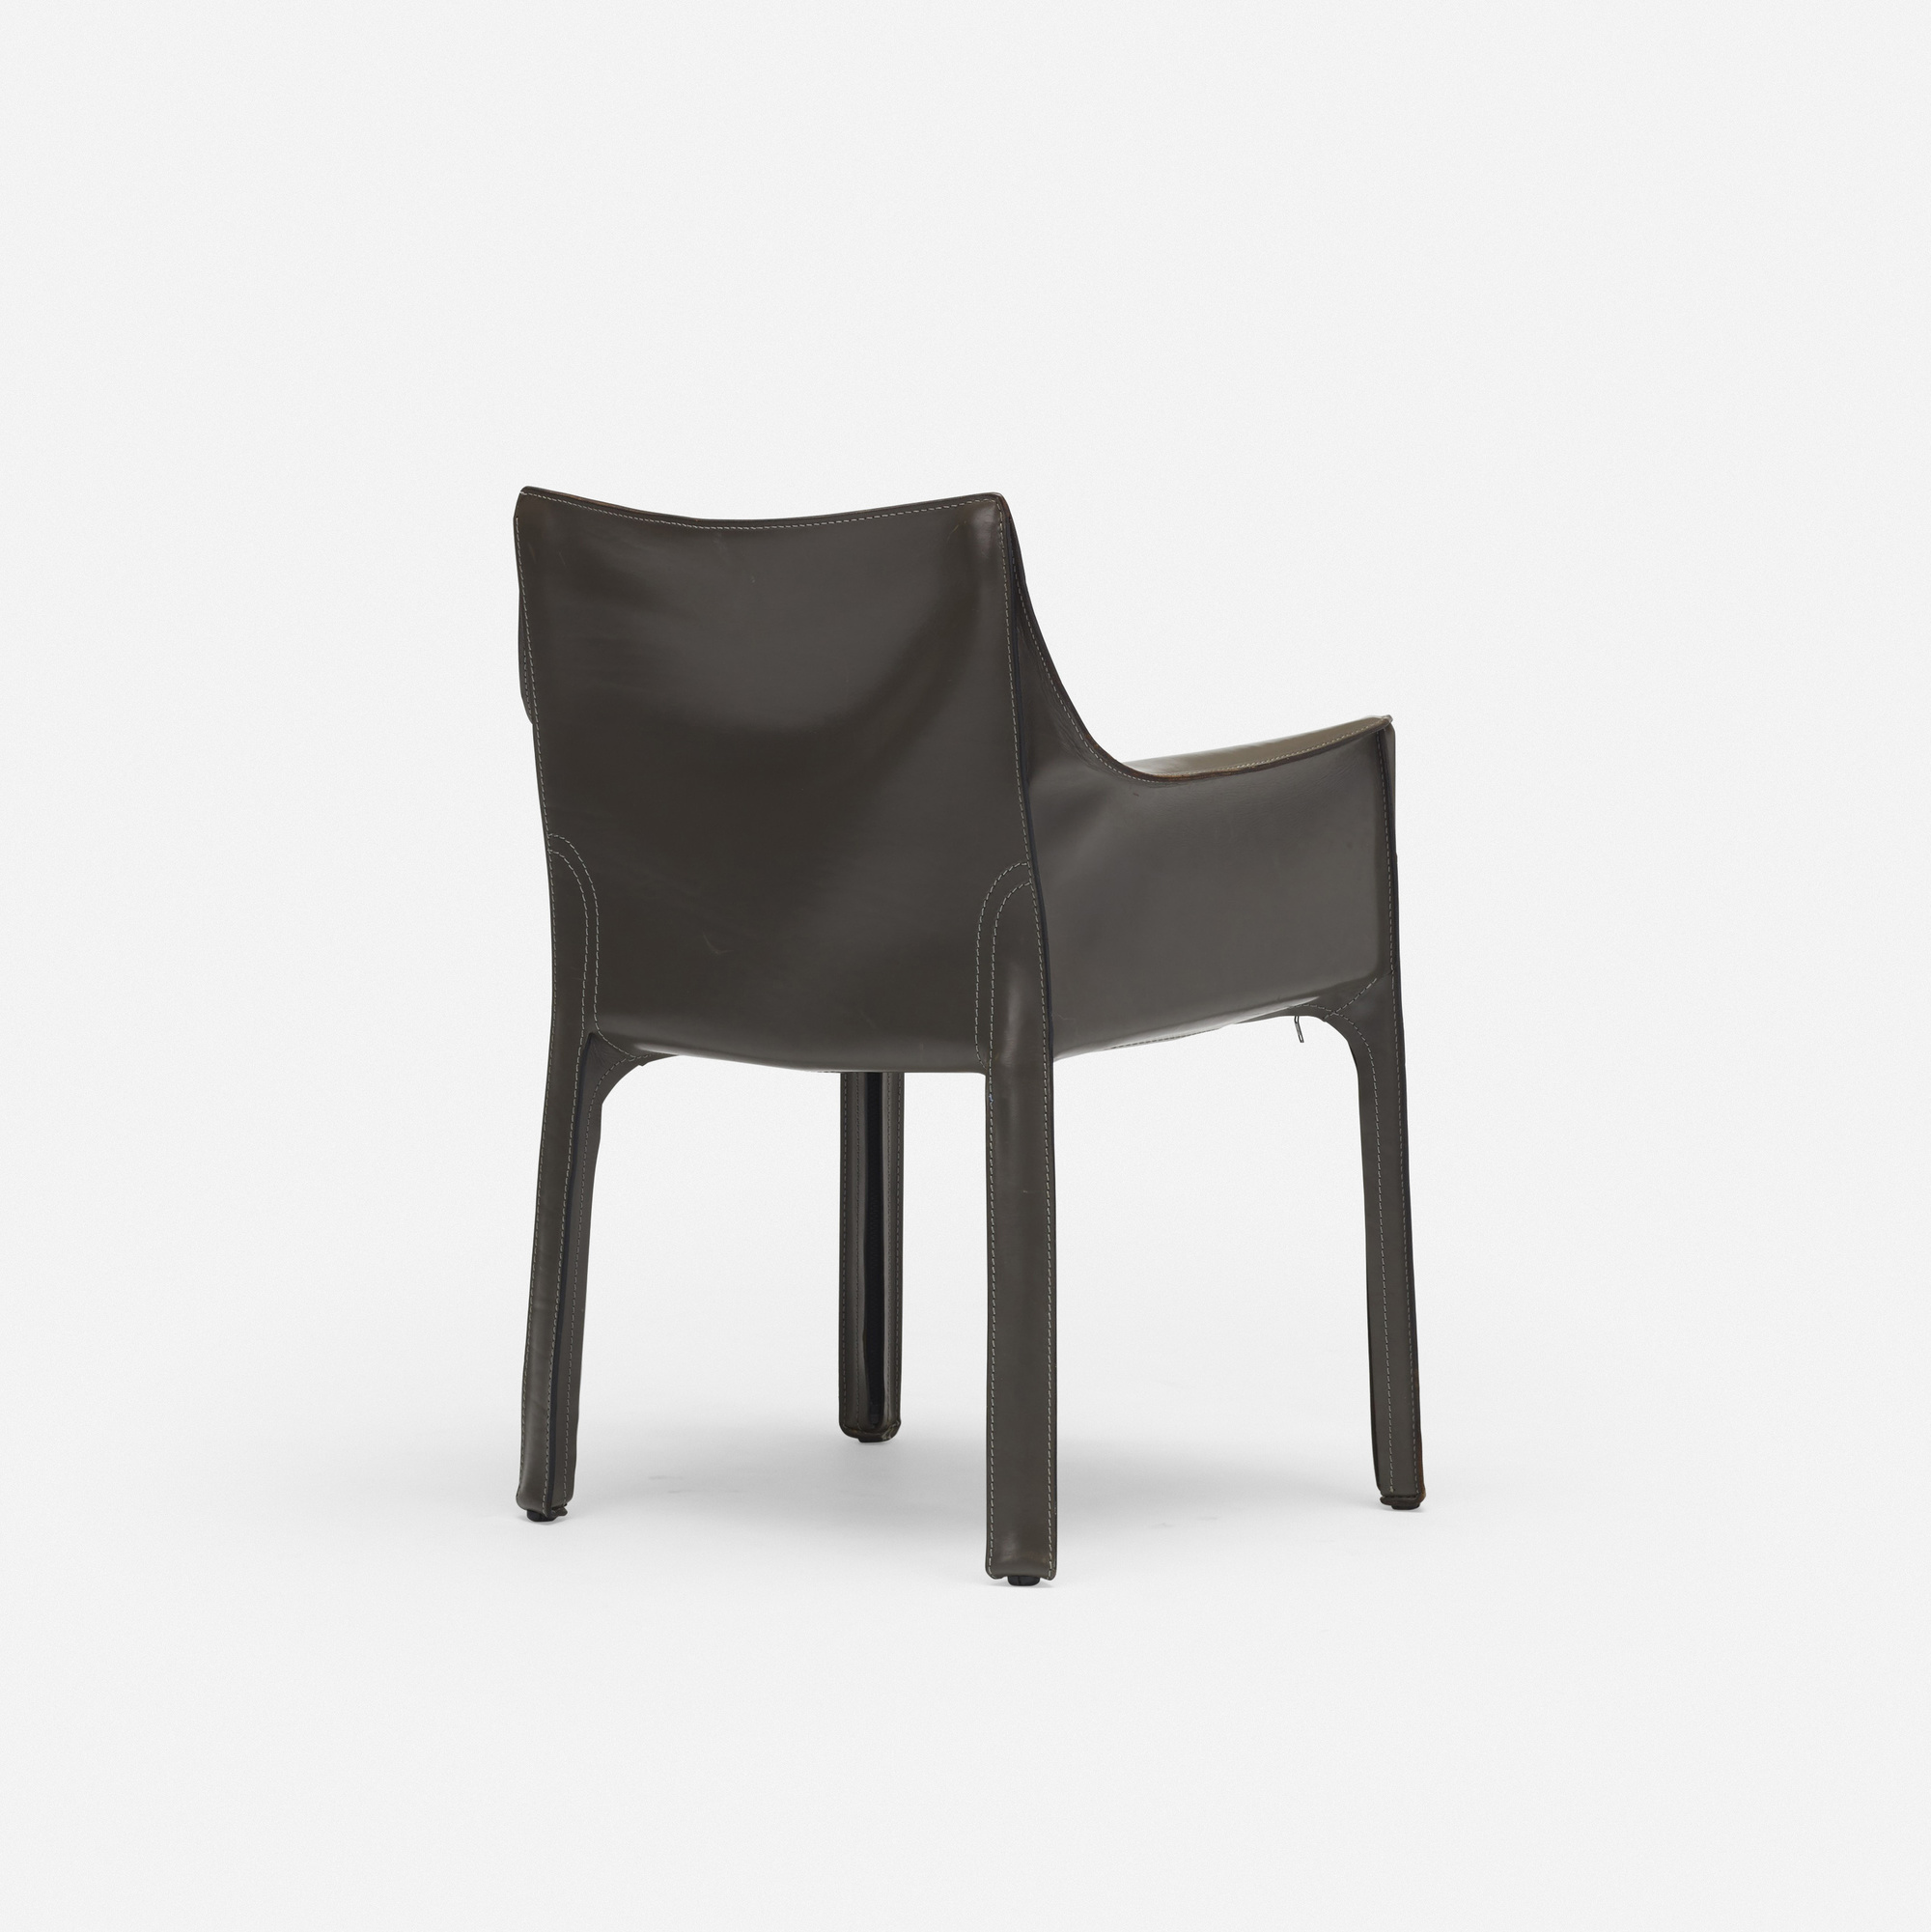 162 Mario Bellini Cab armchair Mass Modern Day 1 11 August